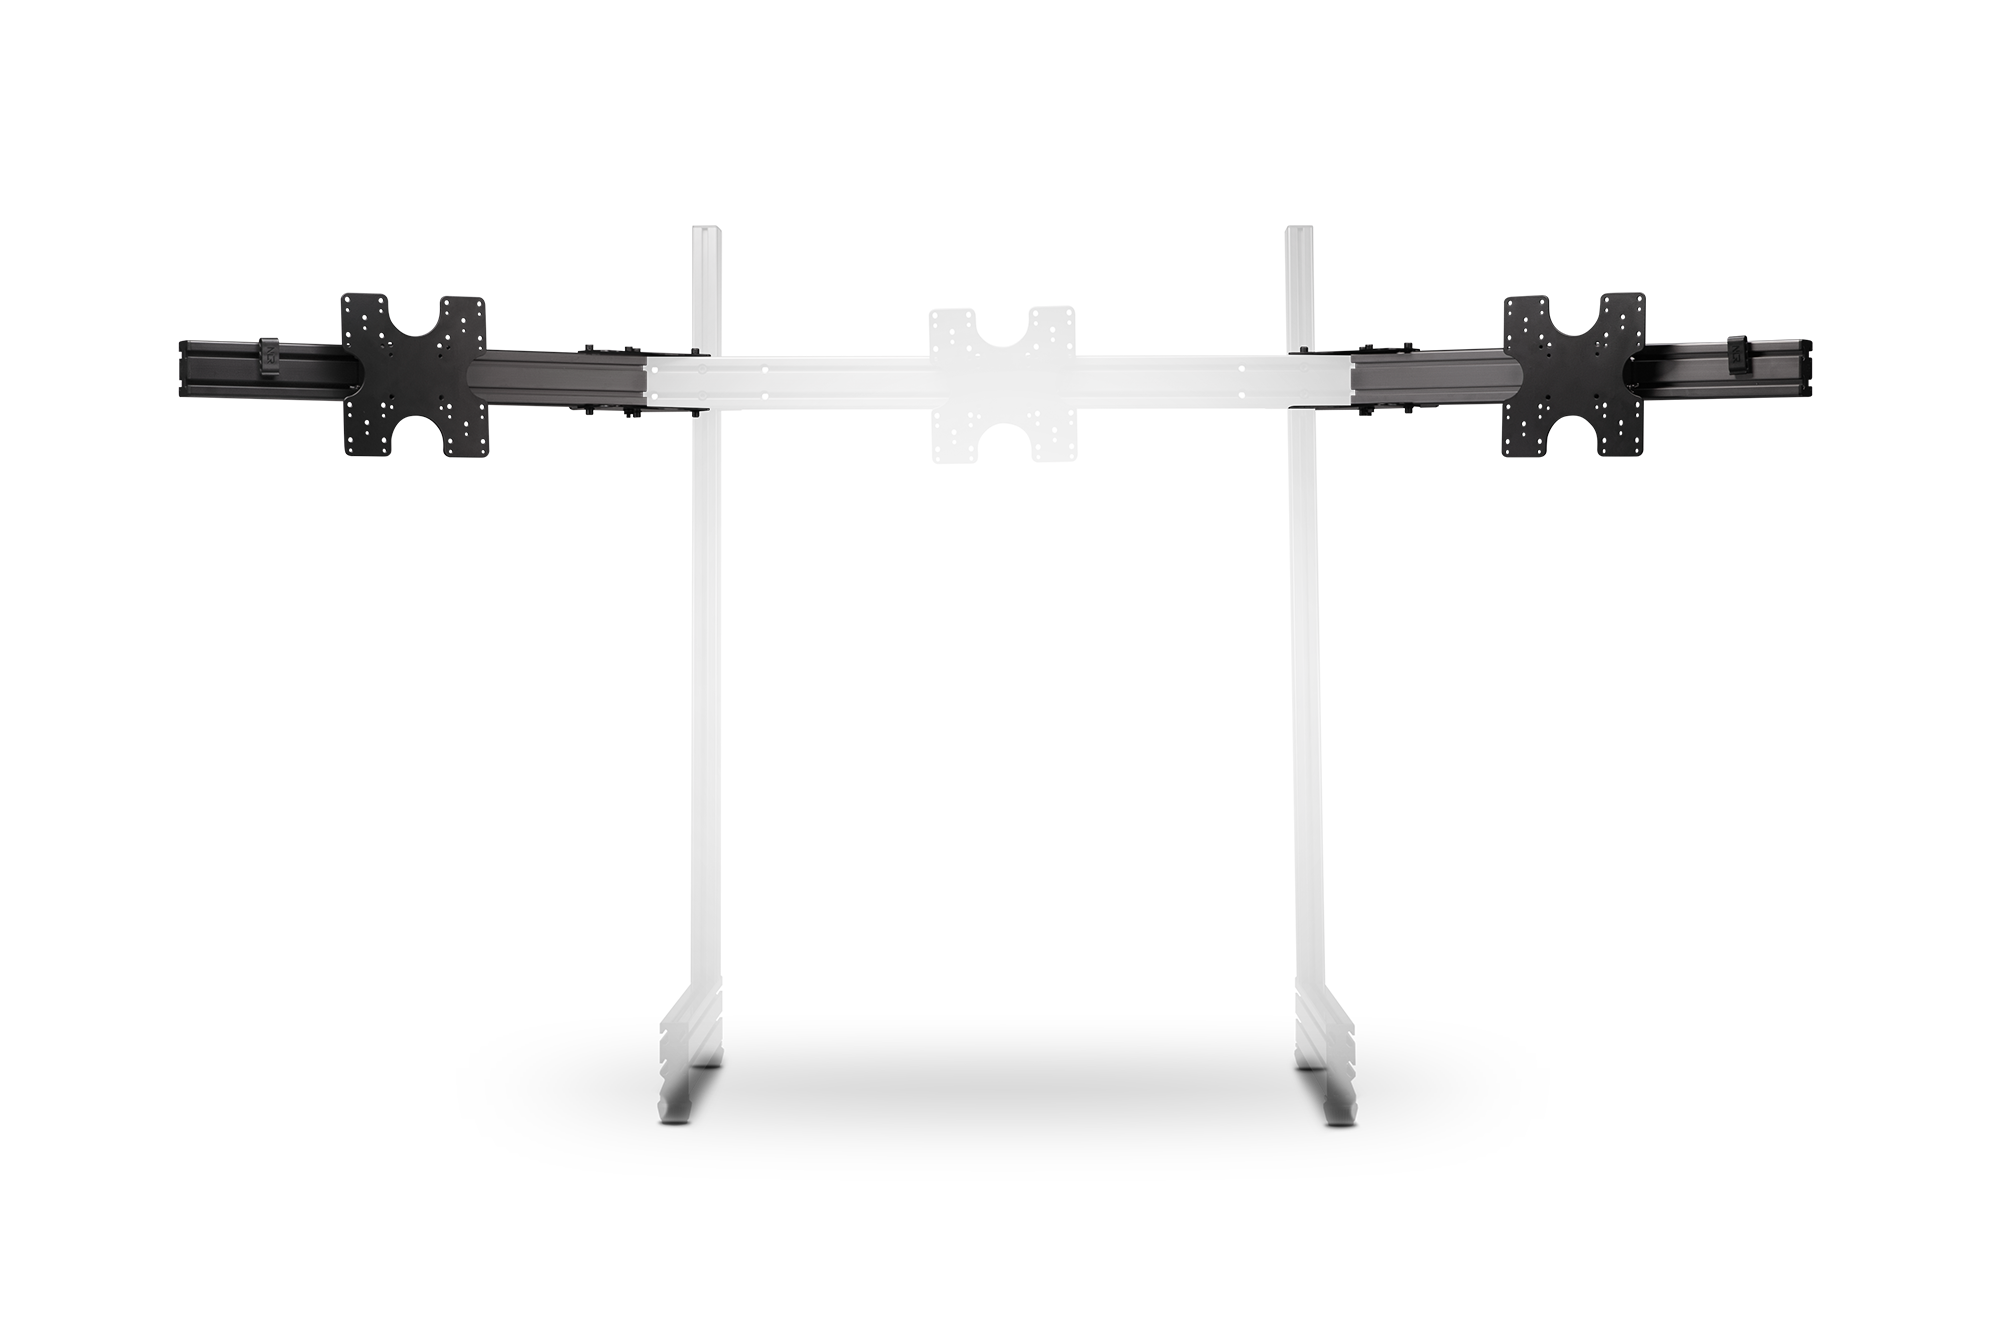 Fgt+elite Triple Monitor Stand Add On 1